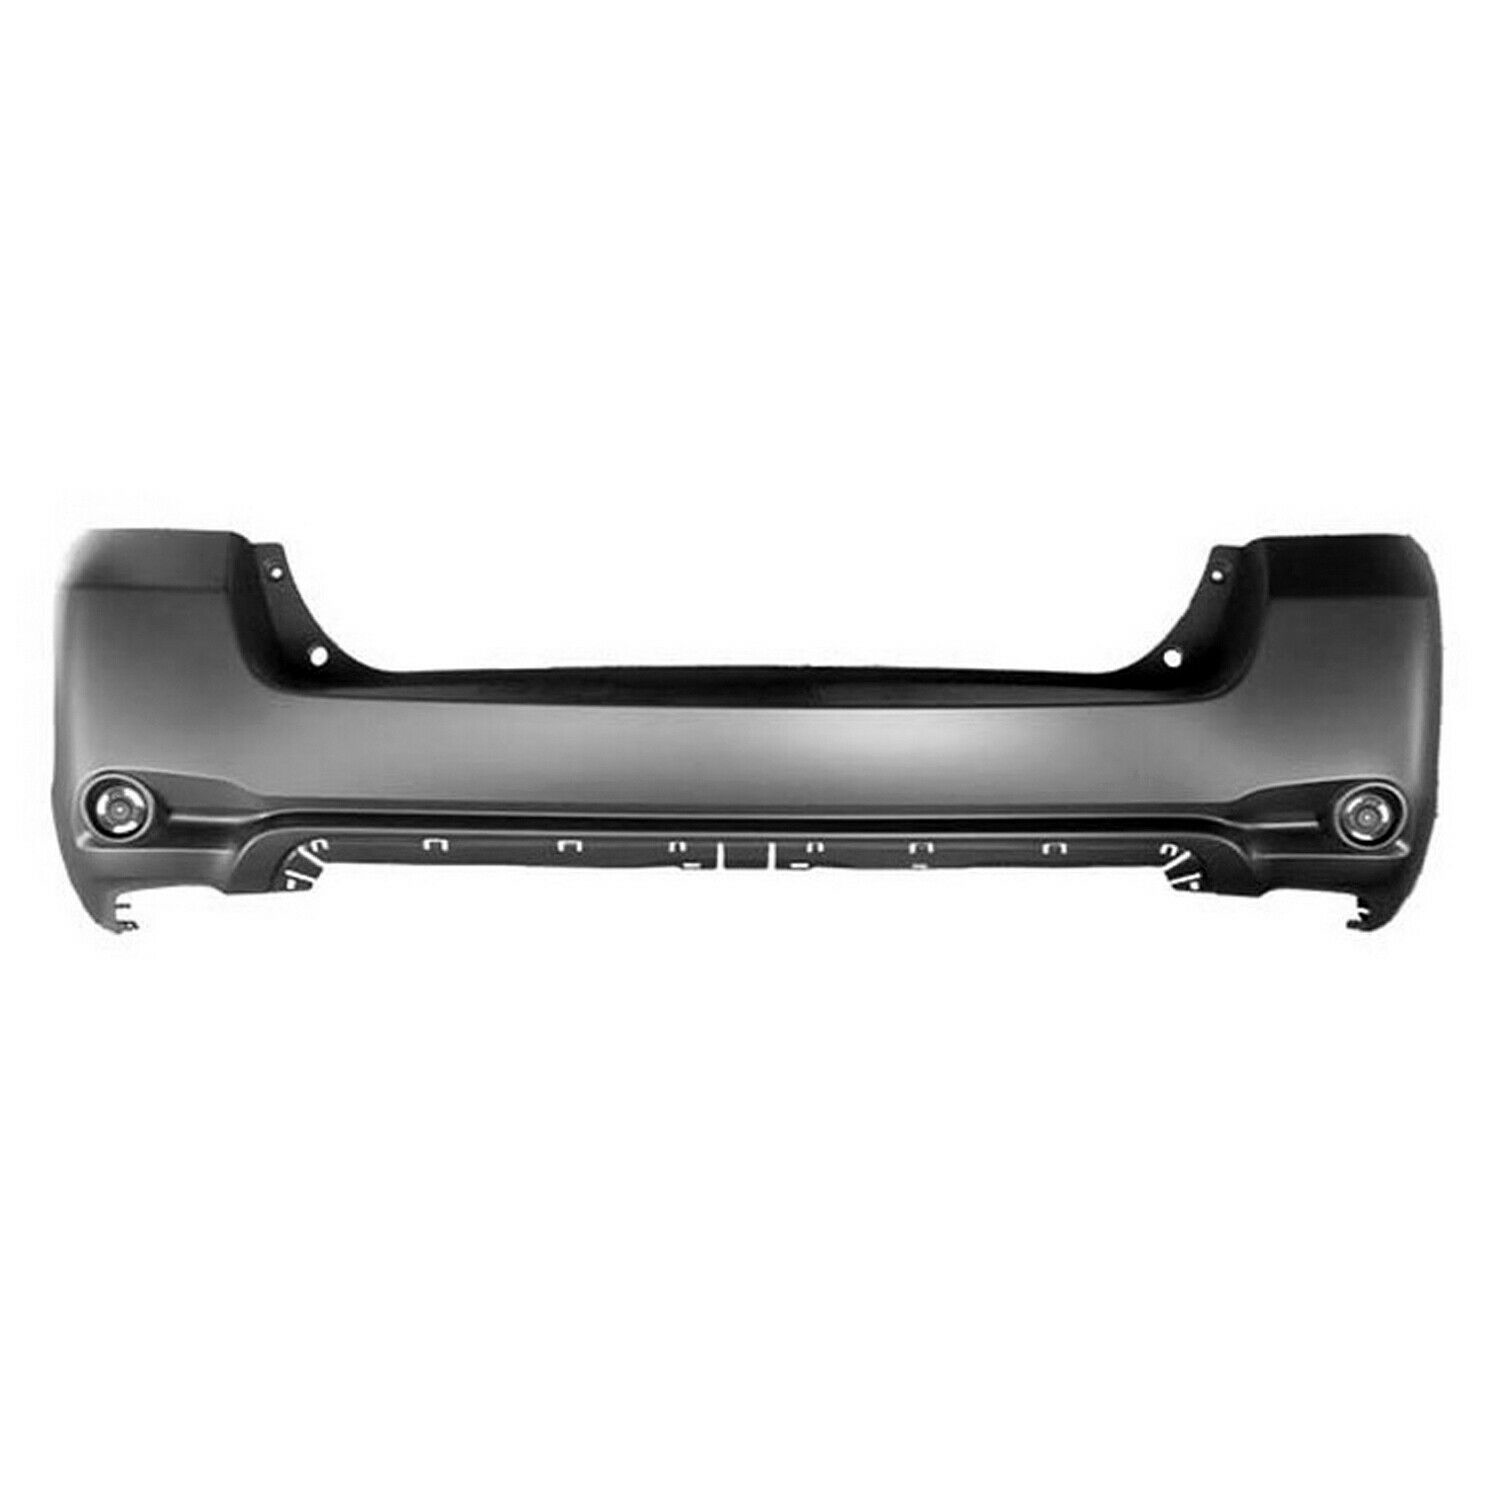 2008-2010 Toyota Highlander Rear Bumper Painted to Match